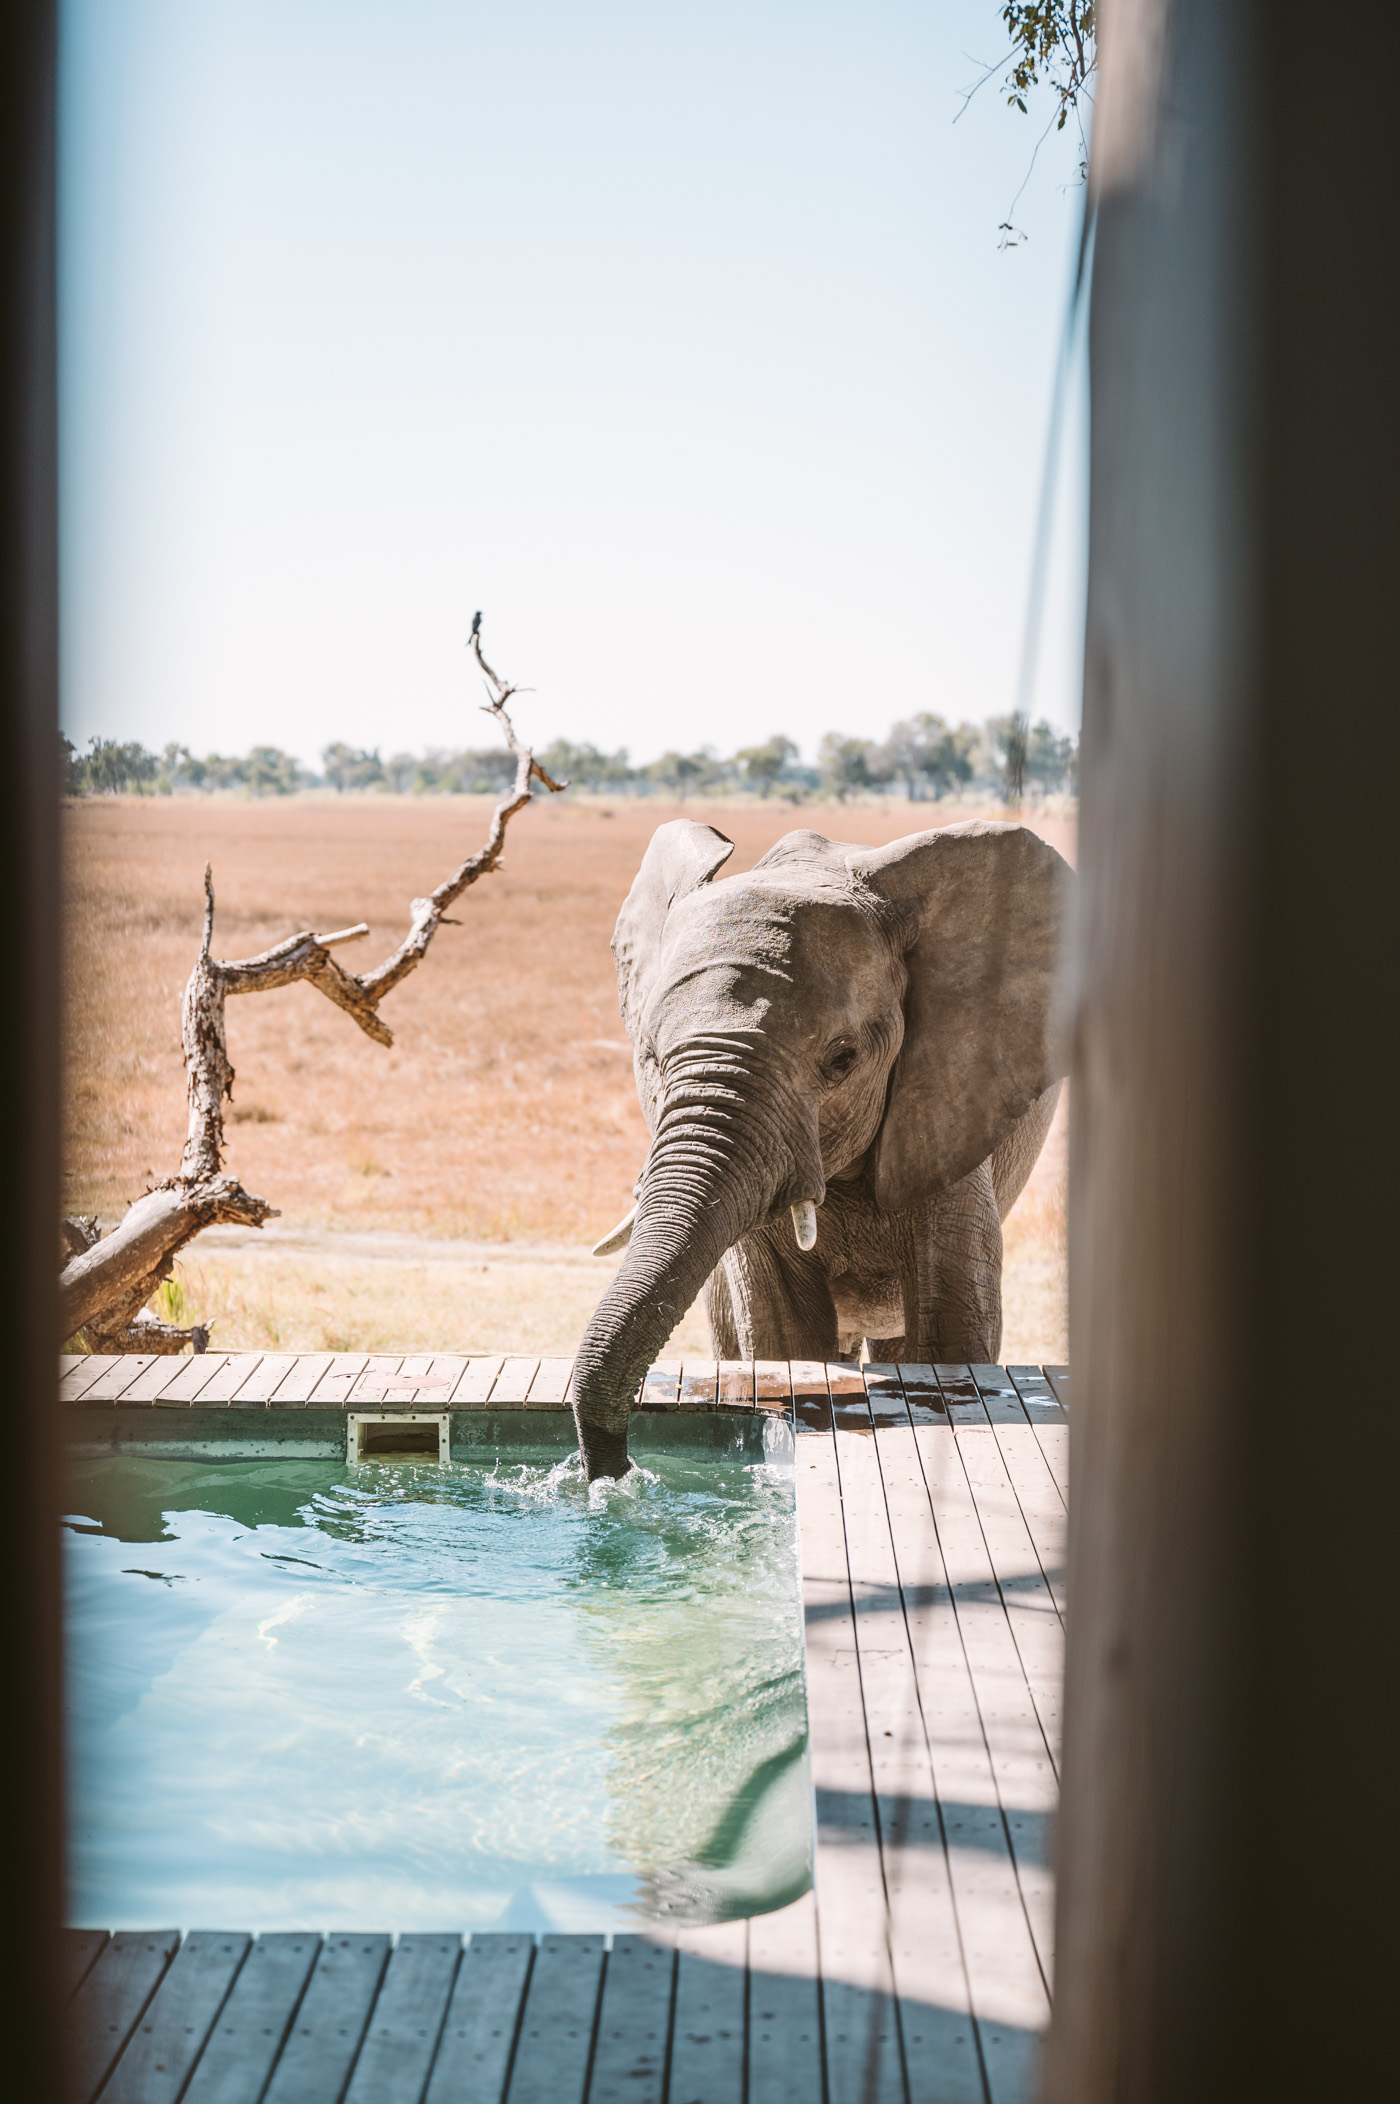 andBeyond Xaranna Okavango Delta Camp with elephant drinking from plunge pool